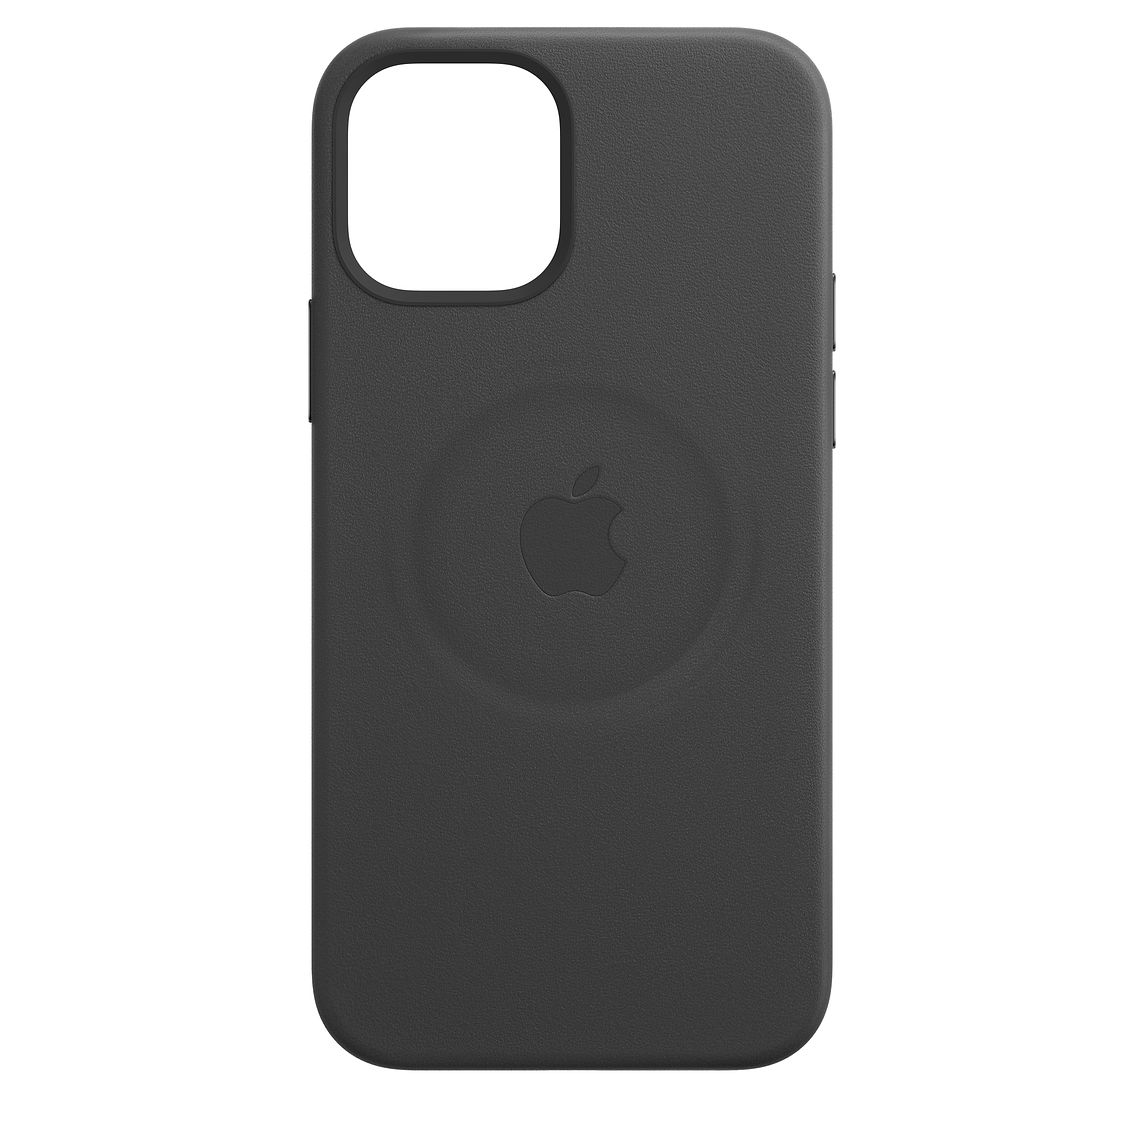 - iPhone 12 mini Leather Case with MagSafe / Negro 6